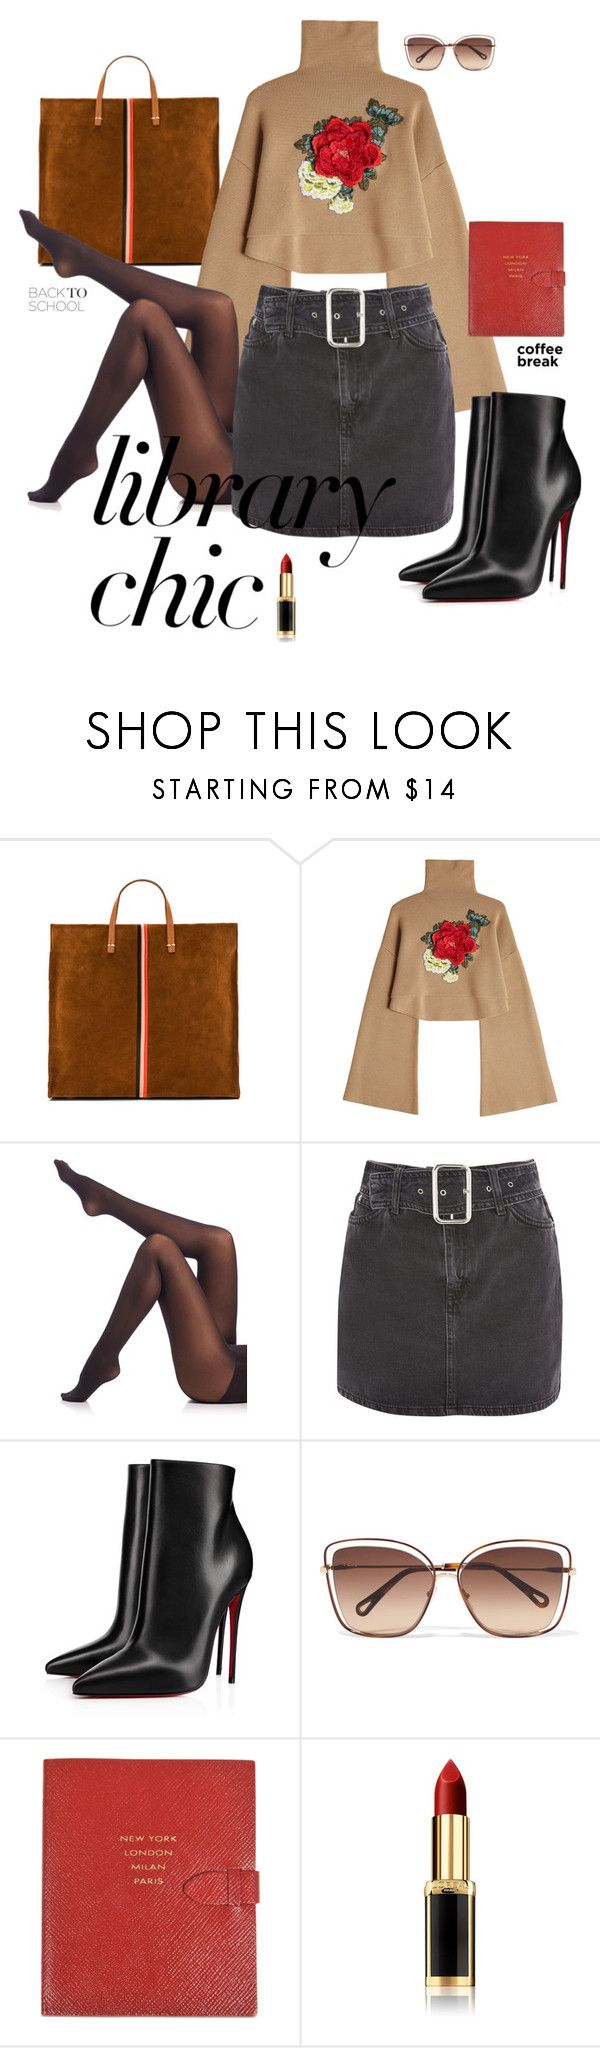 """LIBRARY CHIC"" by olivia-jones1 on Polyvore featuring Clare V., William Fan, SPANX, Topshop, Christian Louboutin, Chloé, Smythson and L'Oréal Paris"